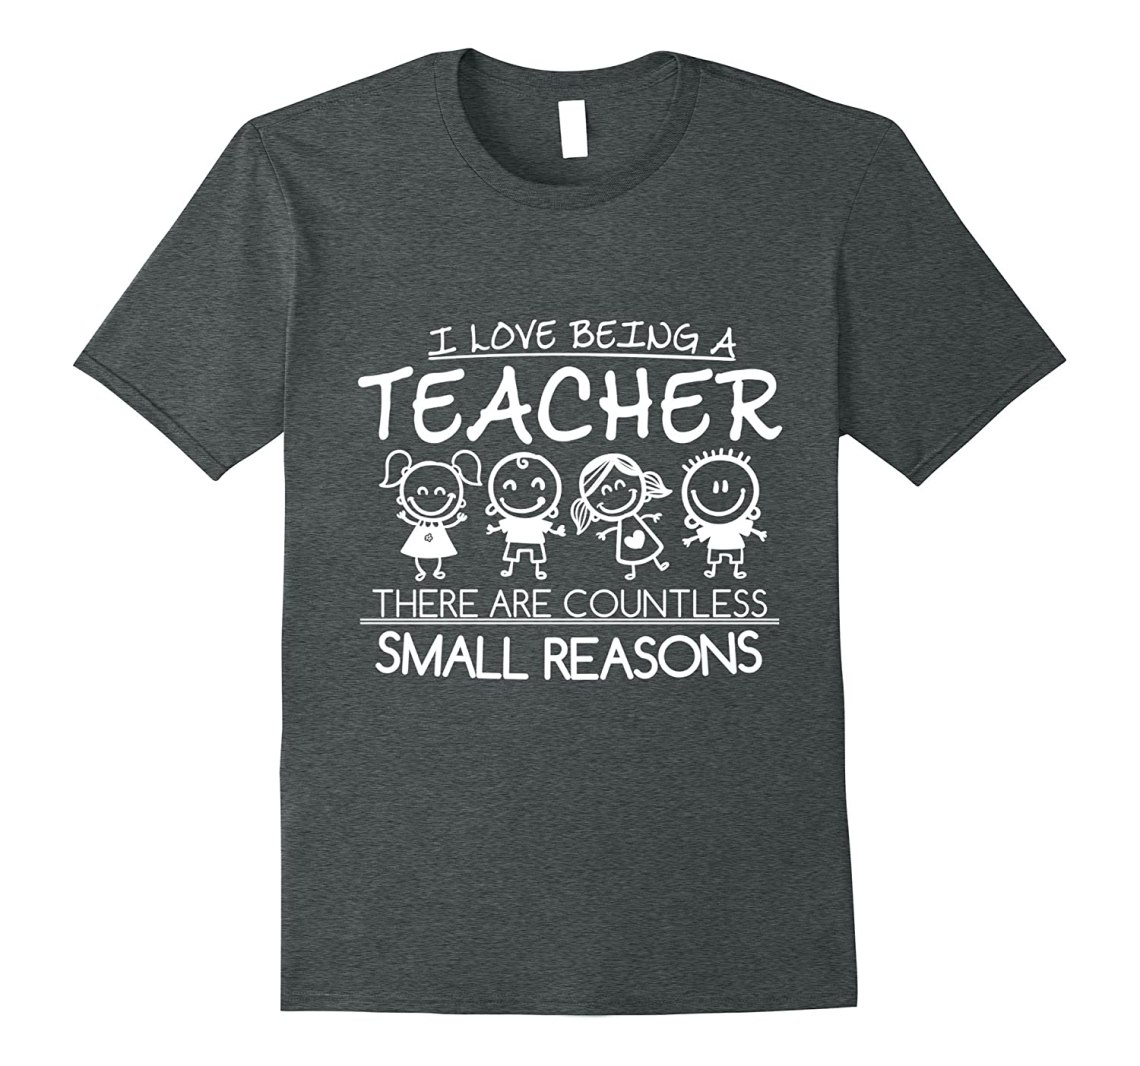 Download I love being a teacher for small reasons T-Shirt TShirt-CD ...